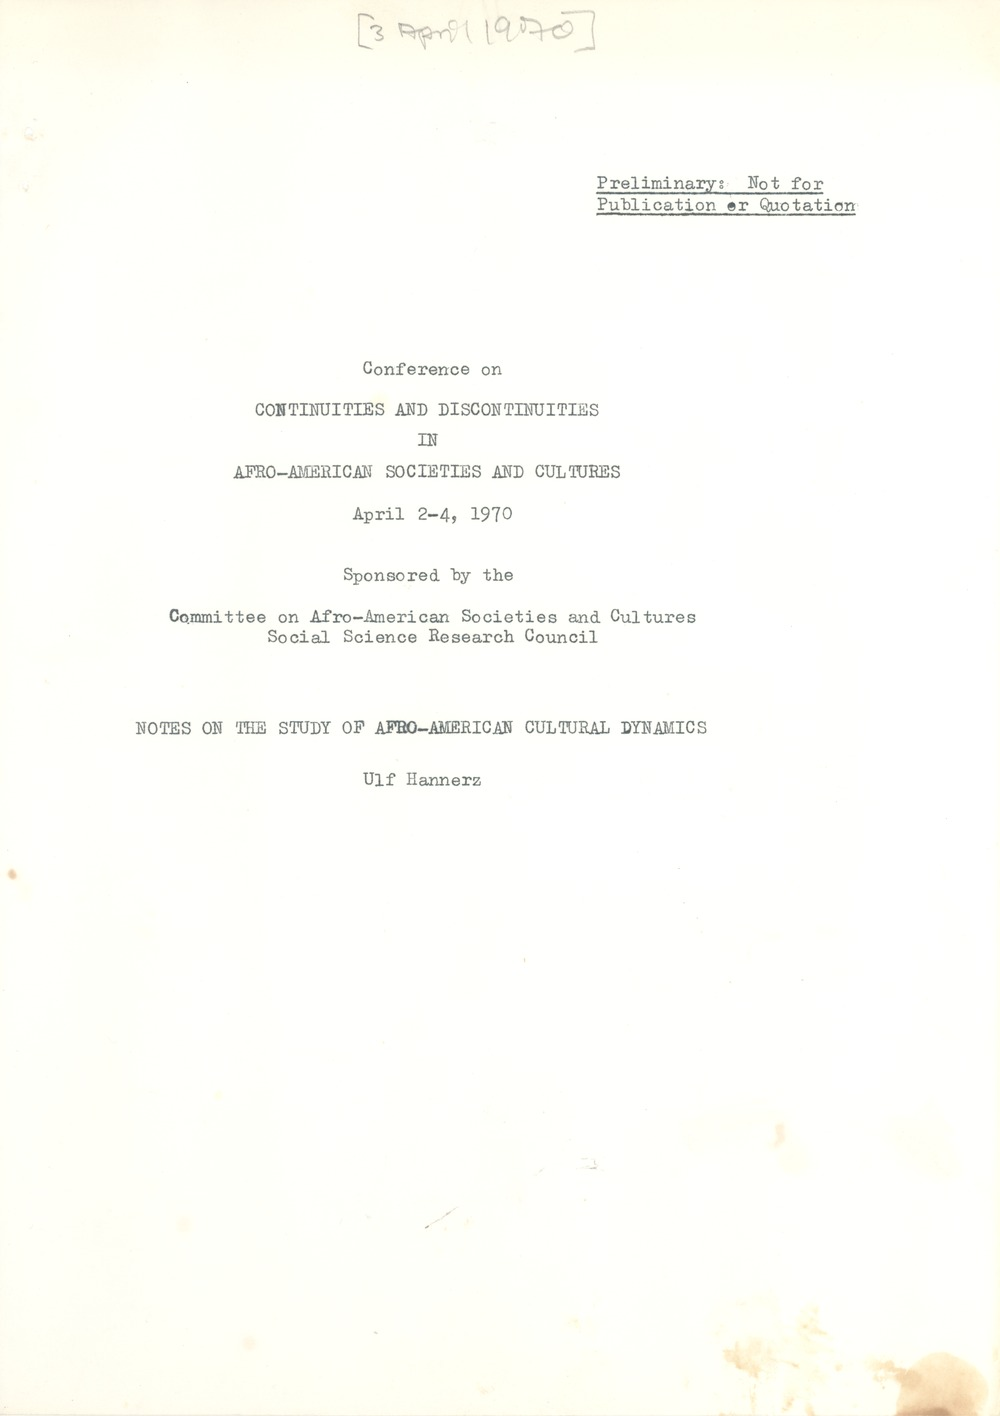 Social Science Research Council (U.S.), April 3, 1970